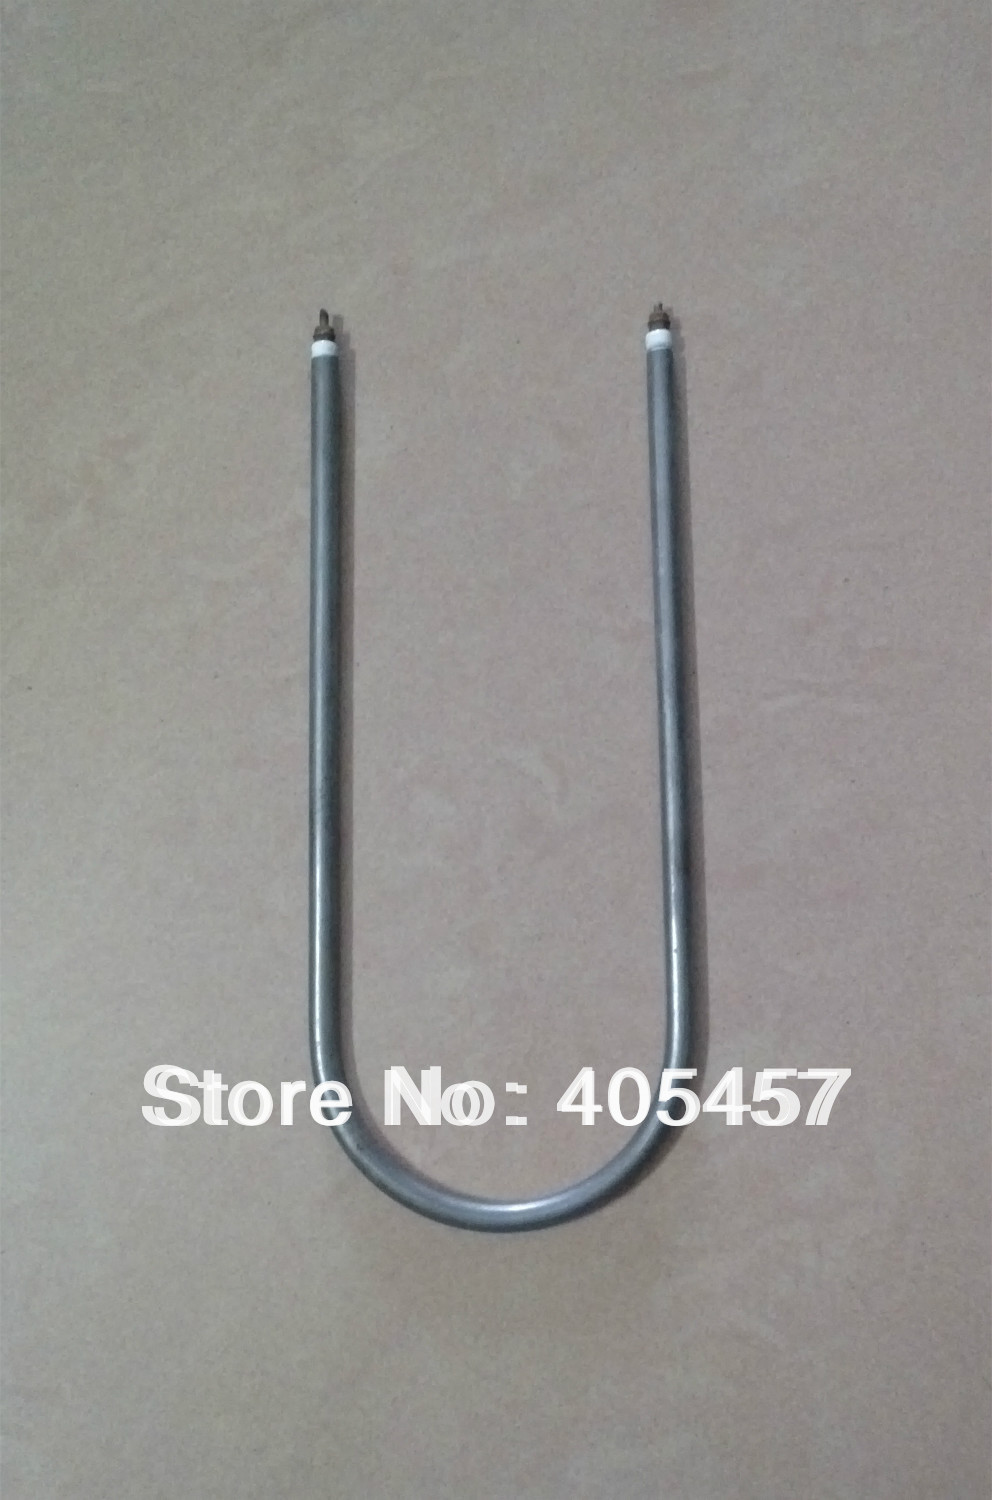 U type heating elements,U sharp electric heat tube,air heating element,heater part,U heater pipe,electrical element electric water heater thermostat temperature control switch heating tube electric heating tube heating rod for ariston